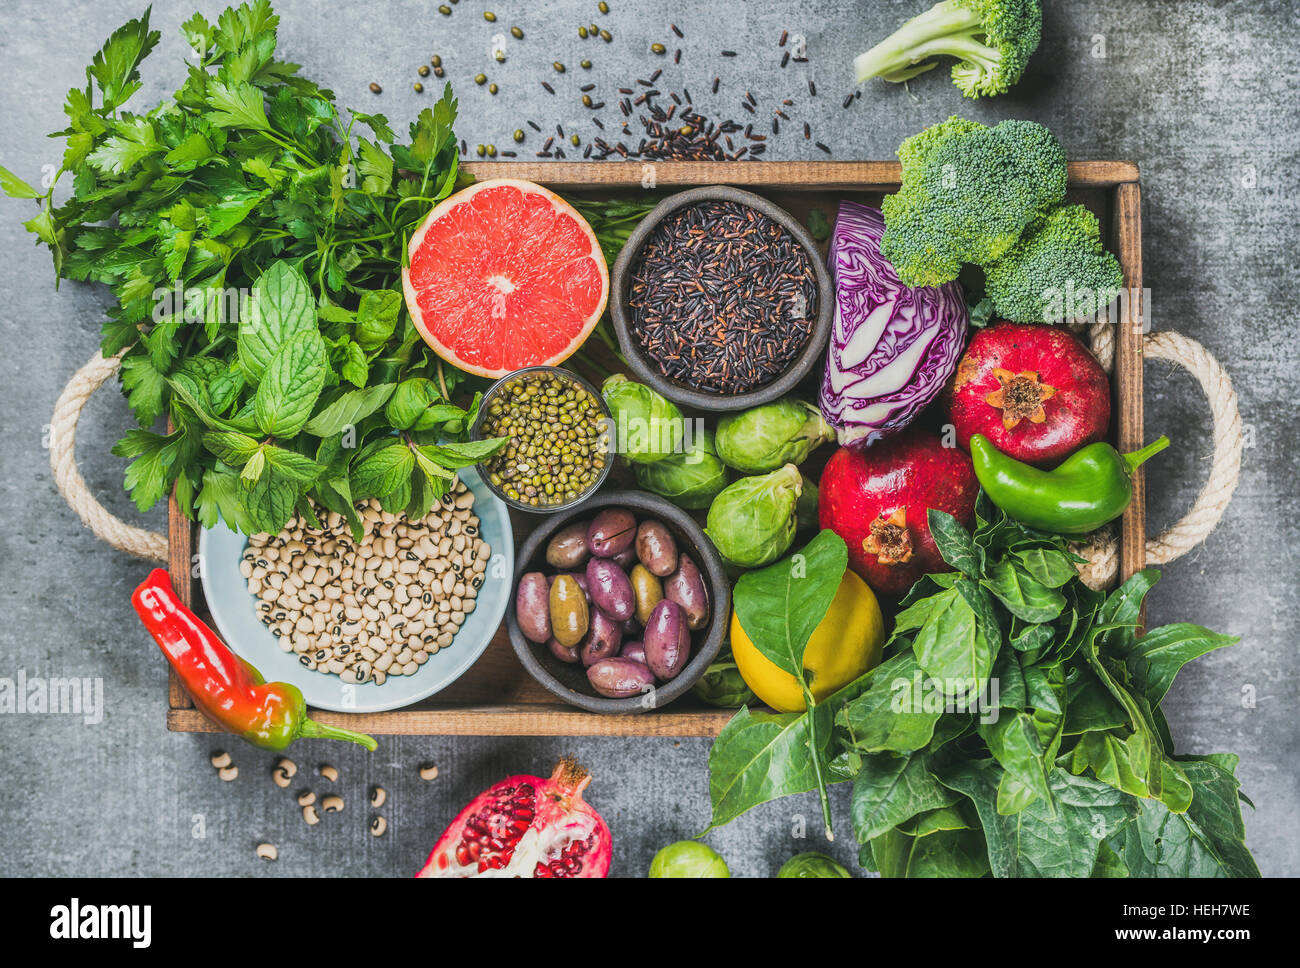 Fresh vegetables and fruits, seeds, cereals, beans, spices, superfoods, herbs, condiment in wooden box for vegan, - Stock Image